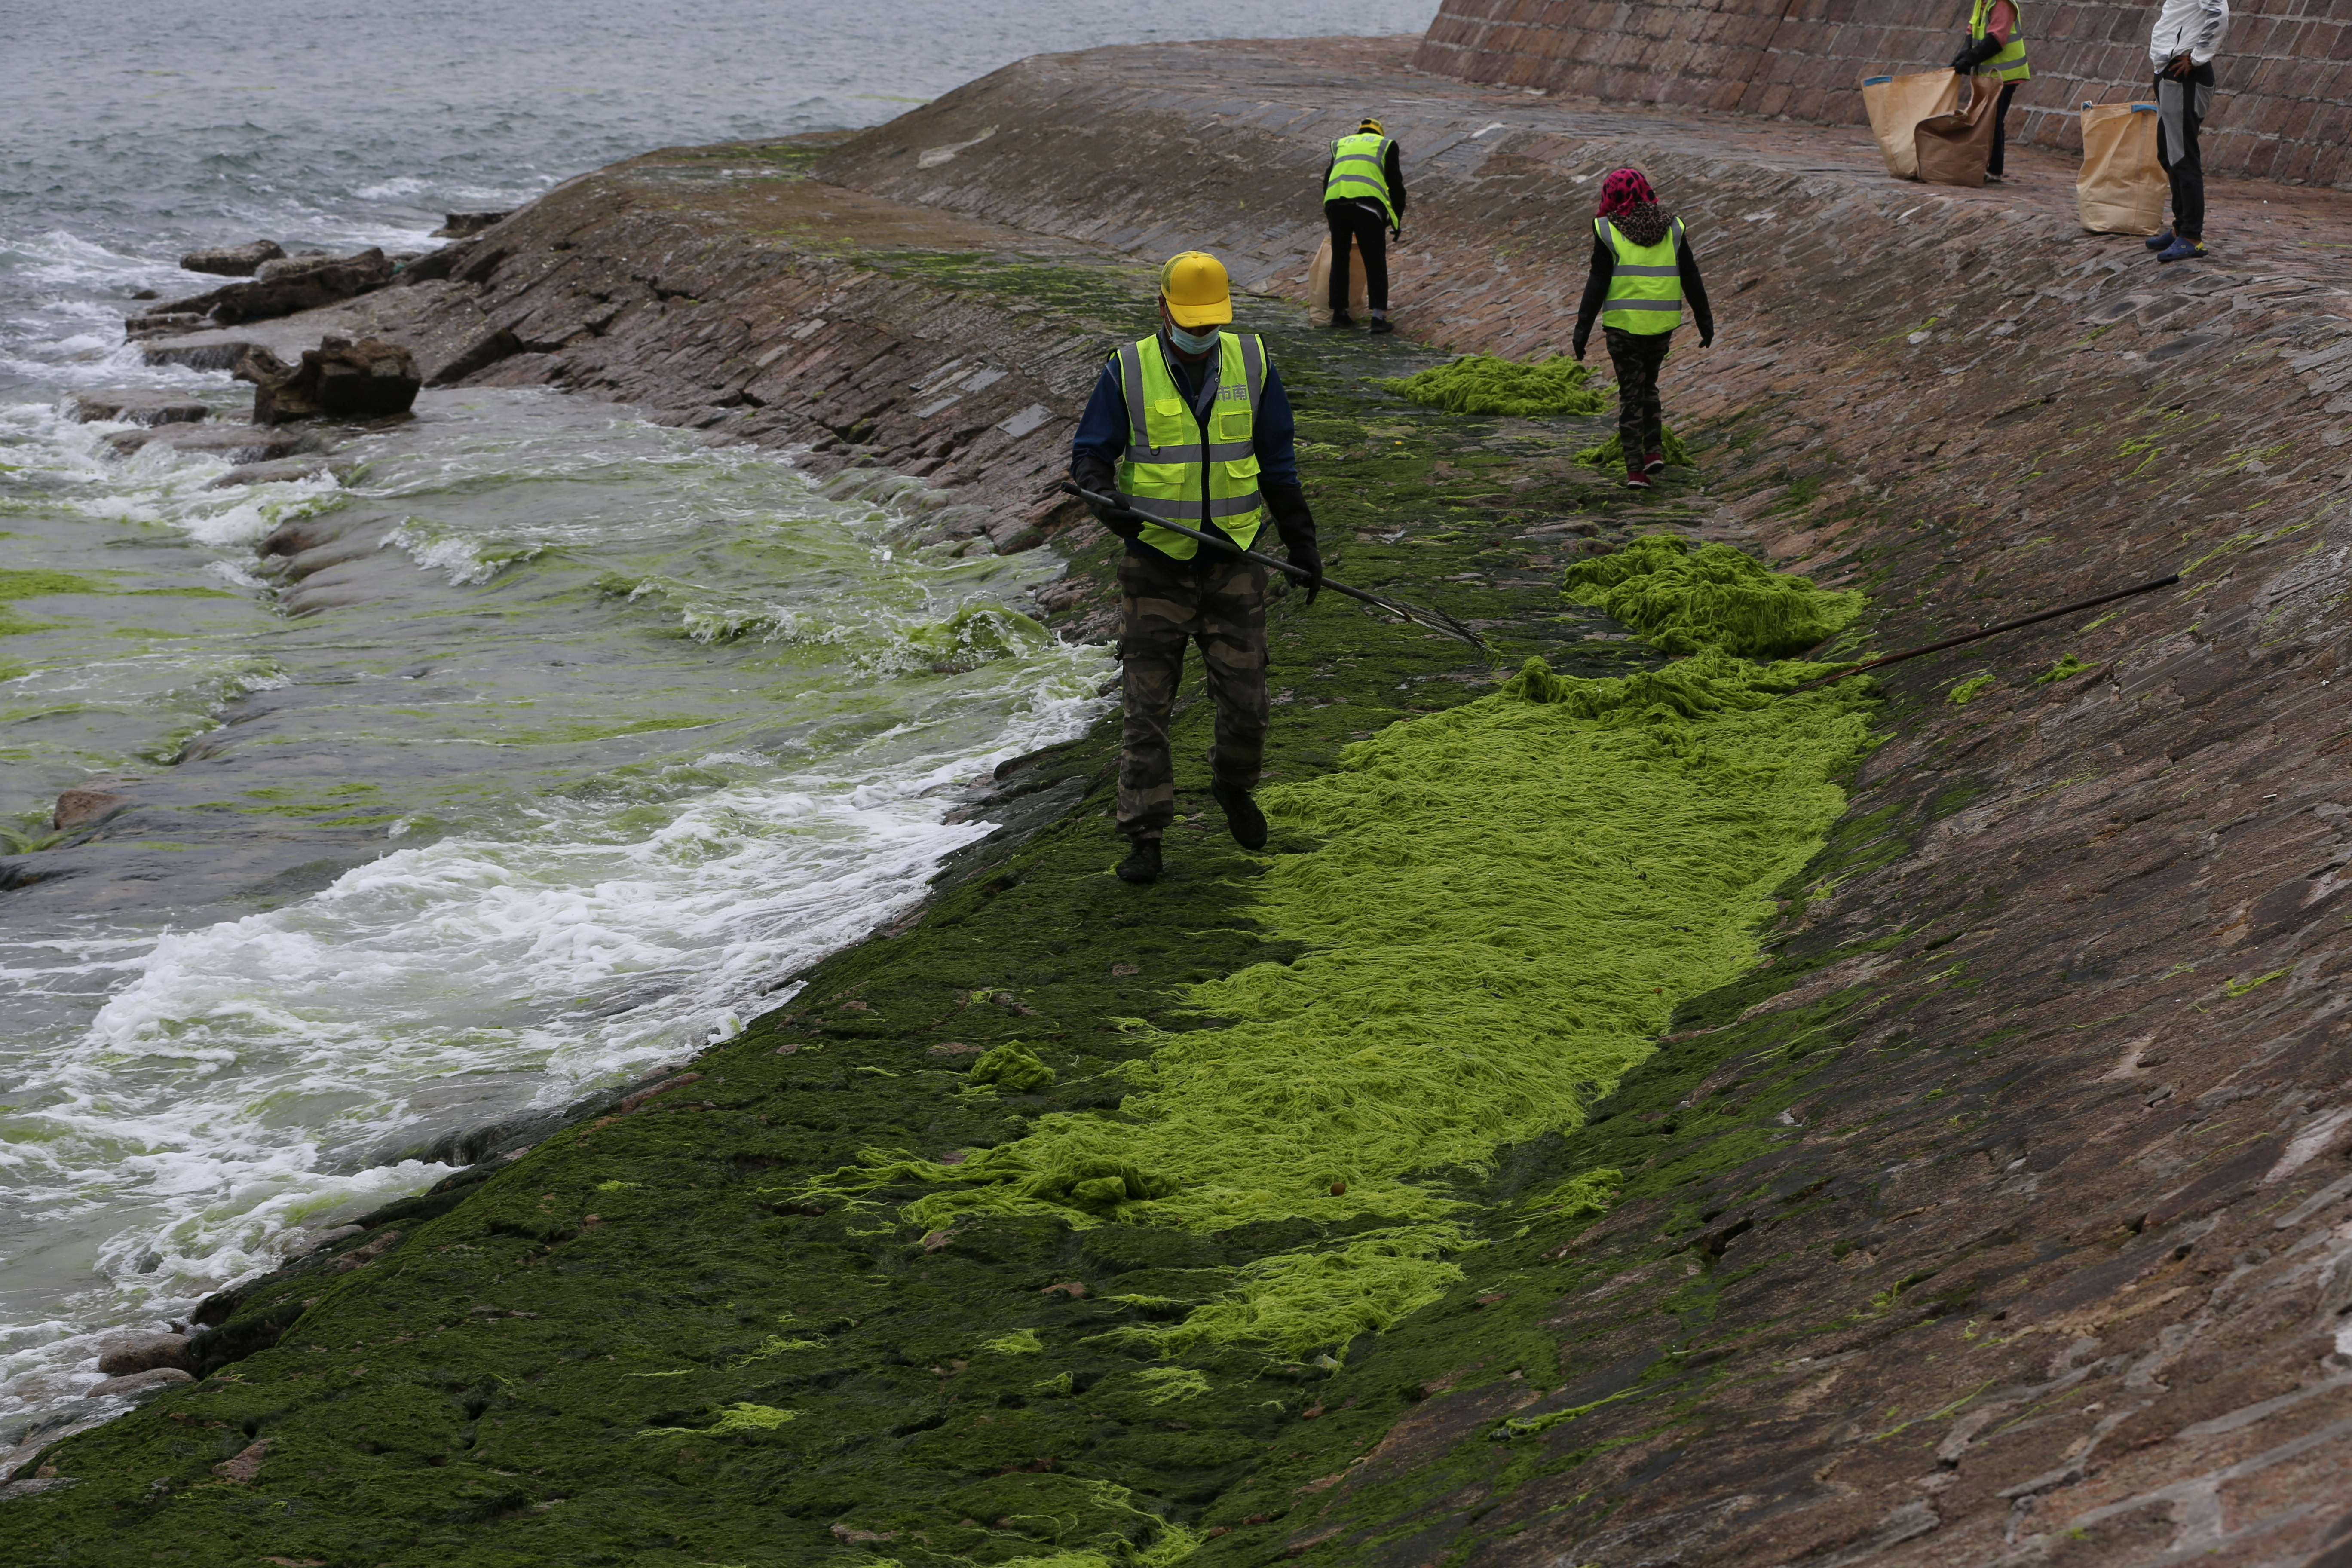 Workers clear algae along the coast in Qingdao, Shandong province, China June 12, 2021. China Daily via REUTERS